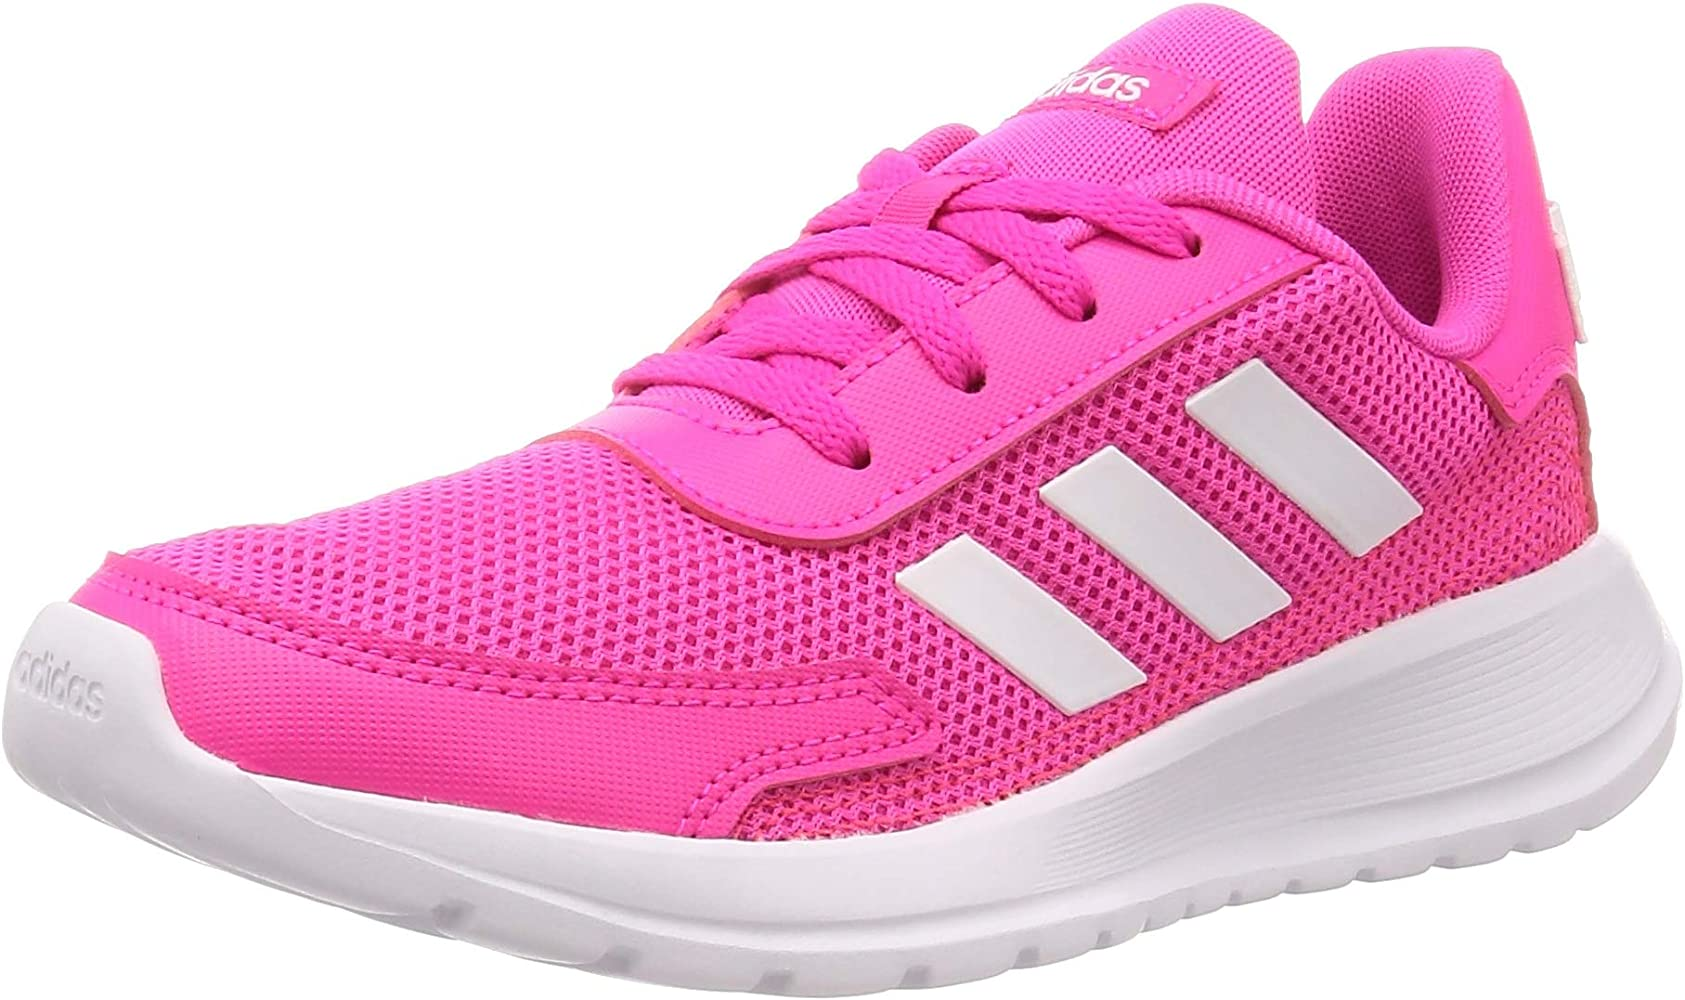 Adidas TENSAUR Run K, Zapatillas Running Unisex Infantil, Rose ...